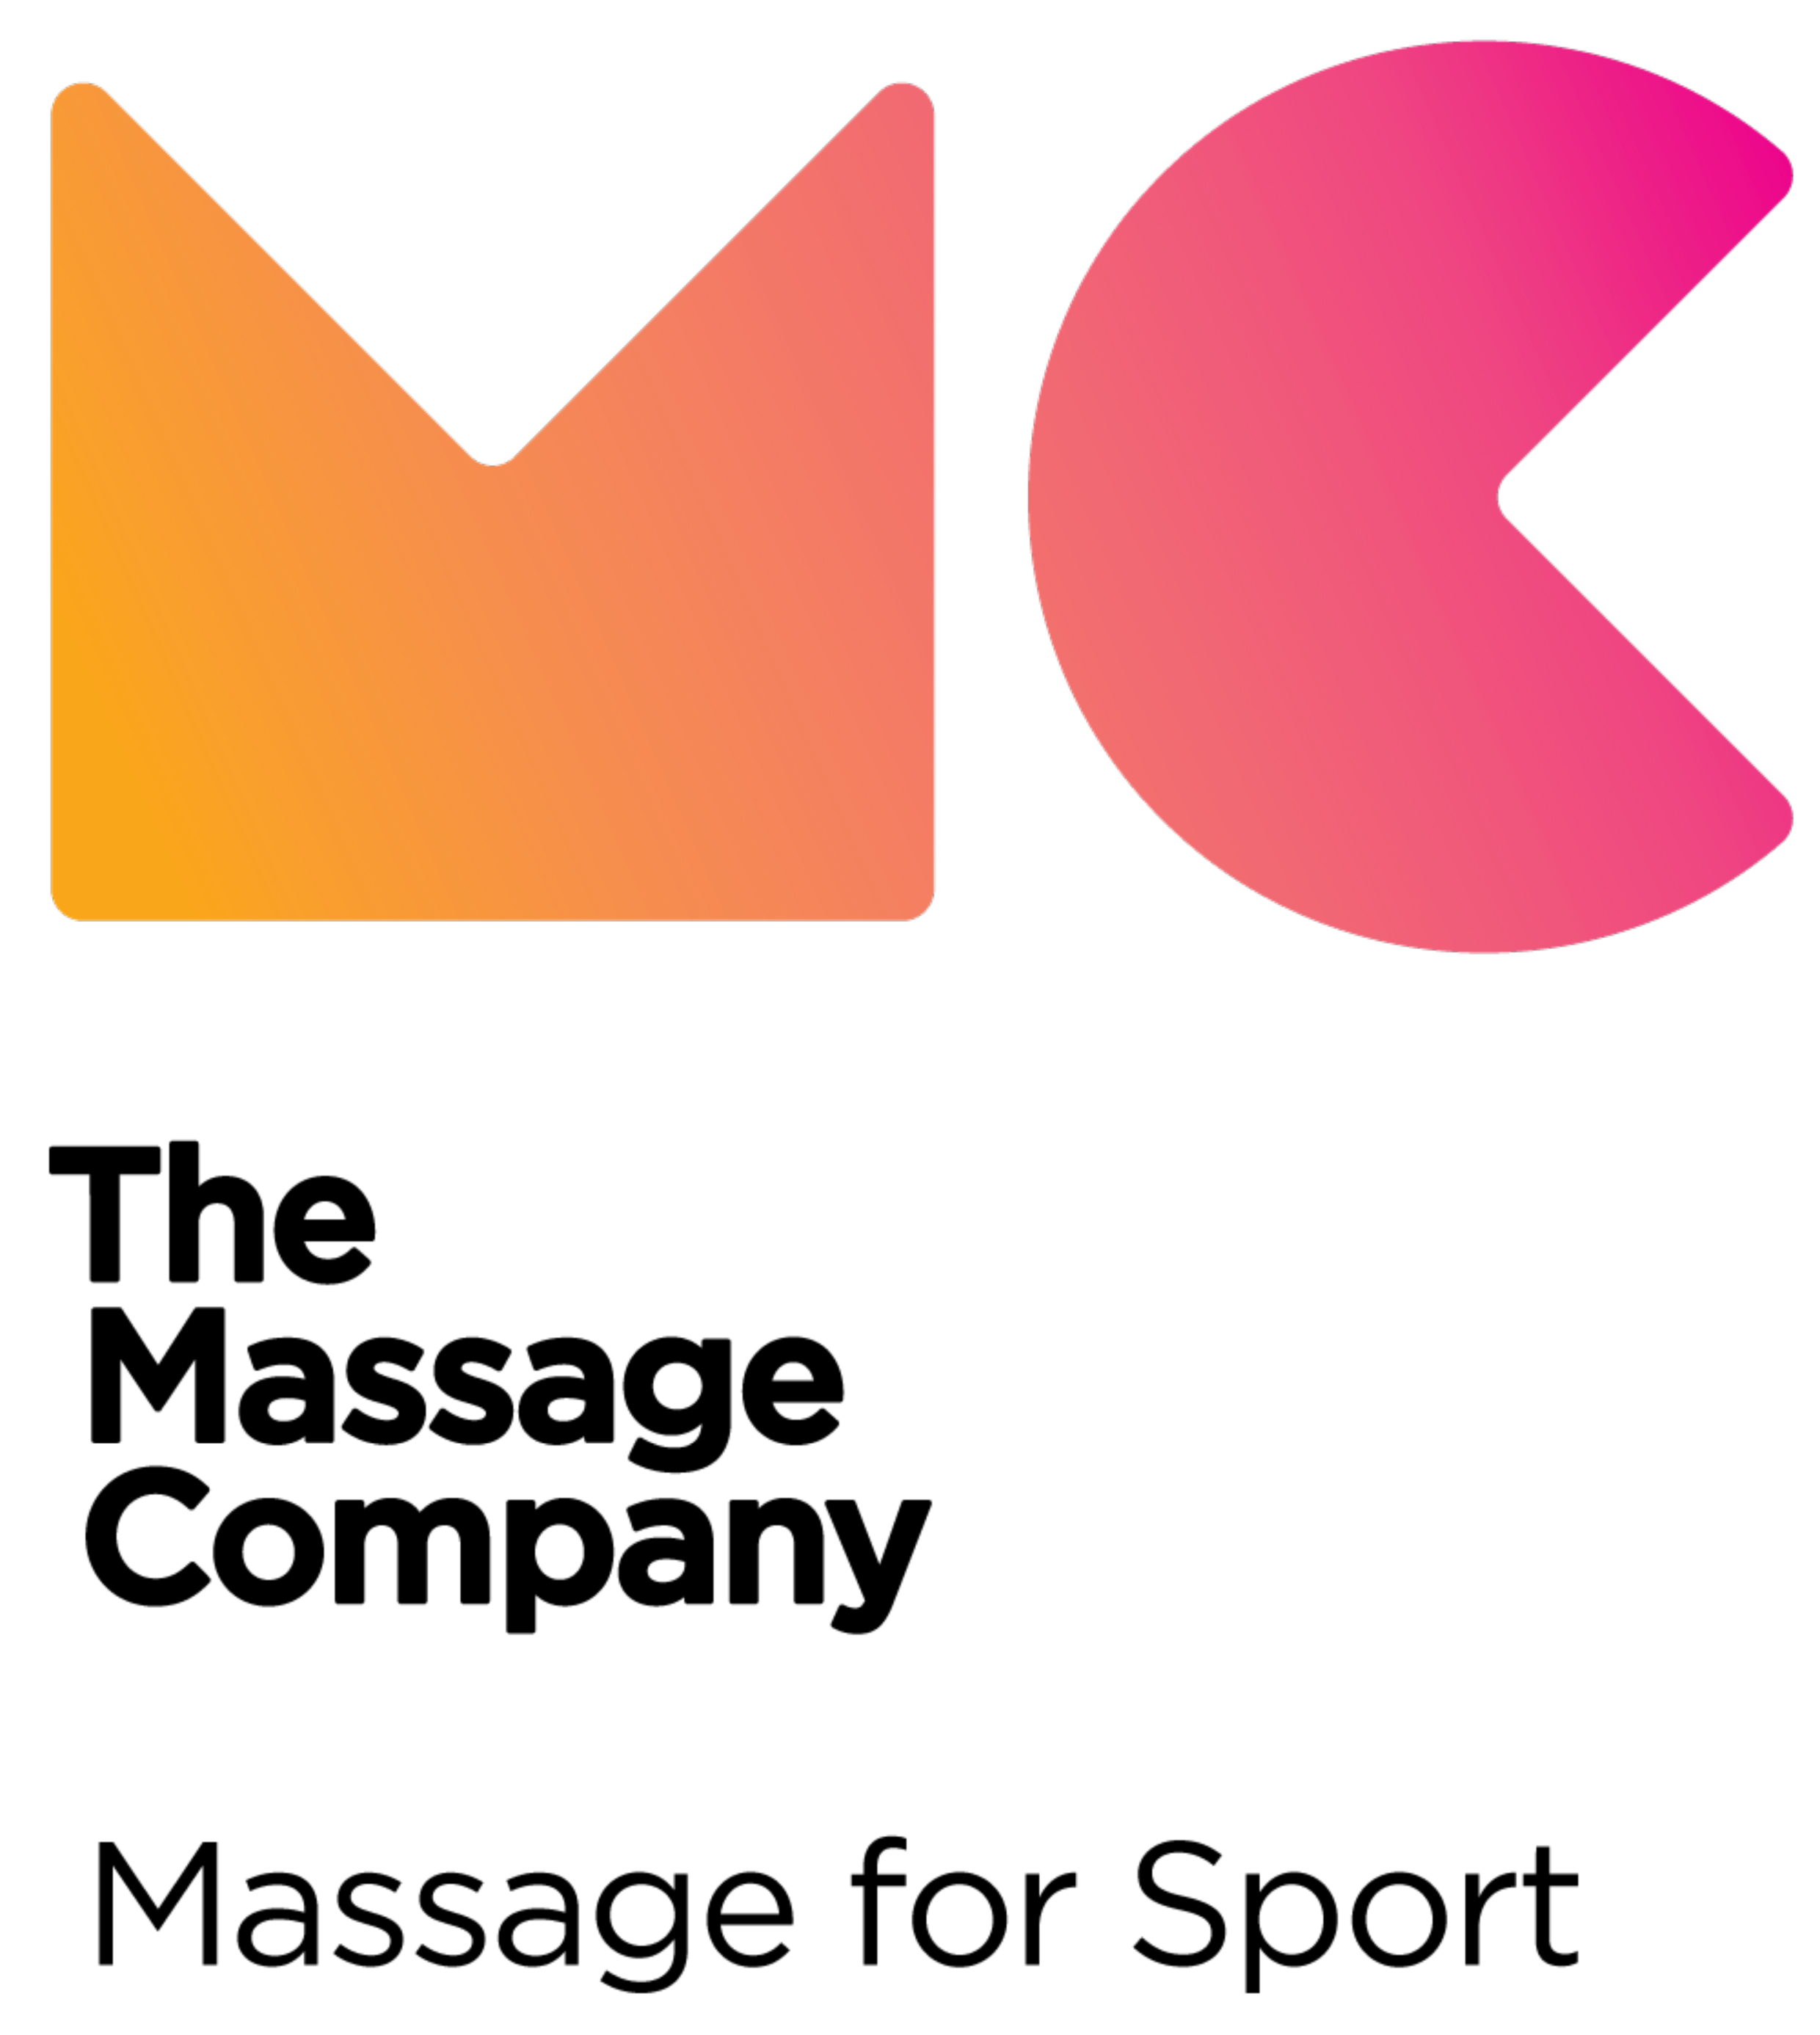 The Massage Company is recruiting with Leisure Opportunities